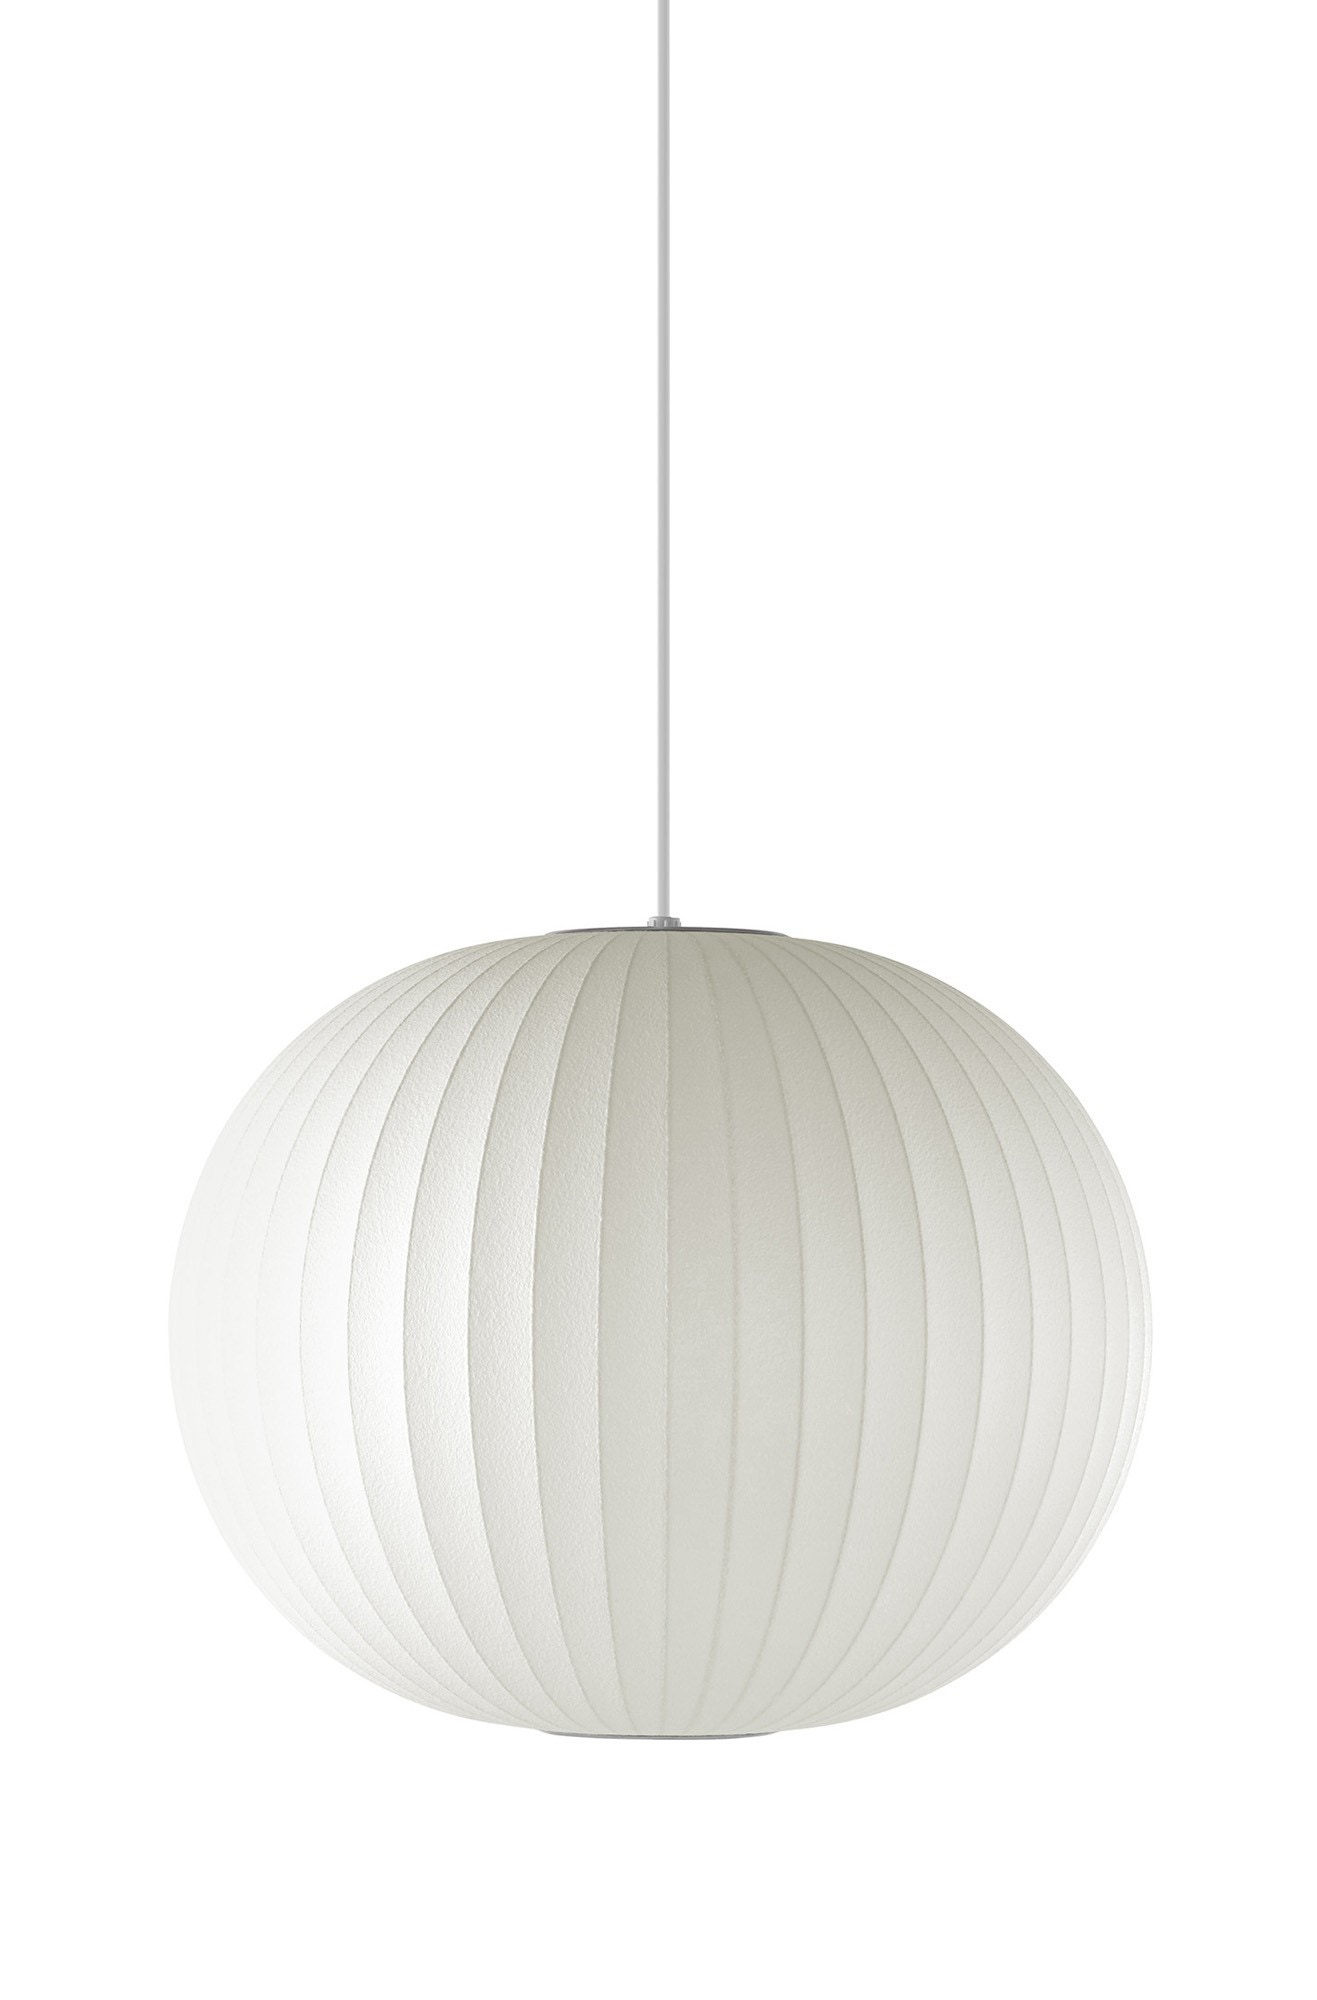 Herman Miller Nelson™ Ball Bubble Lamp Pendant